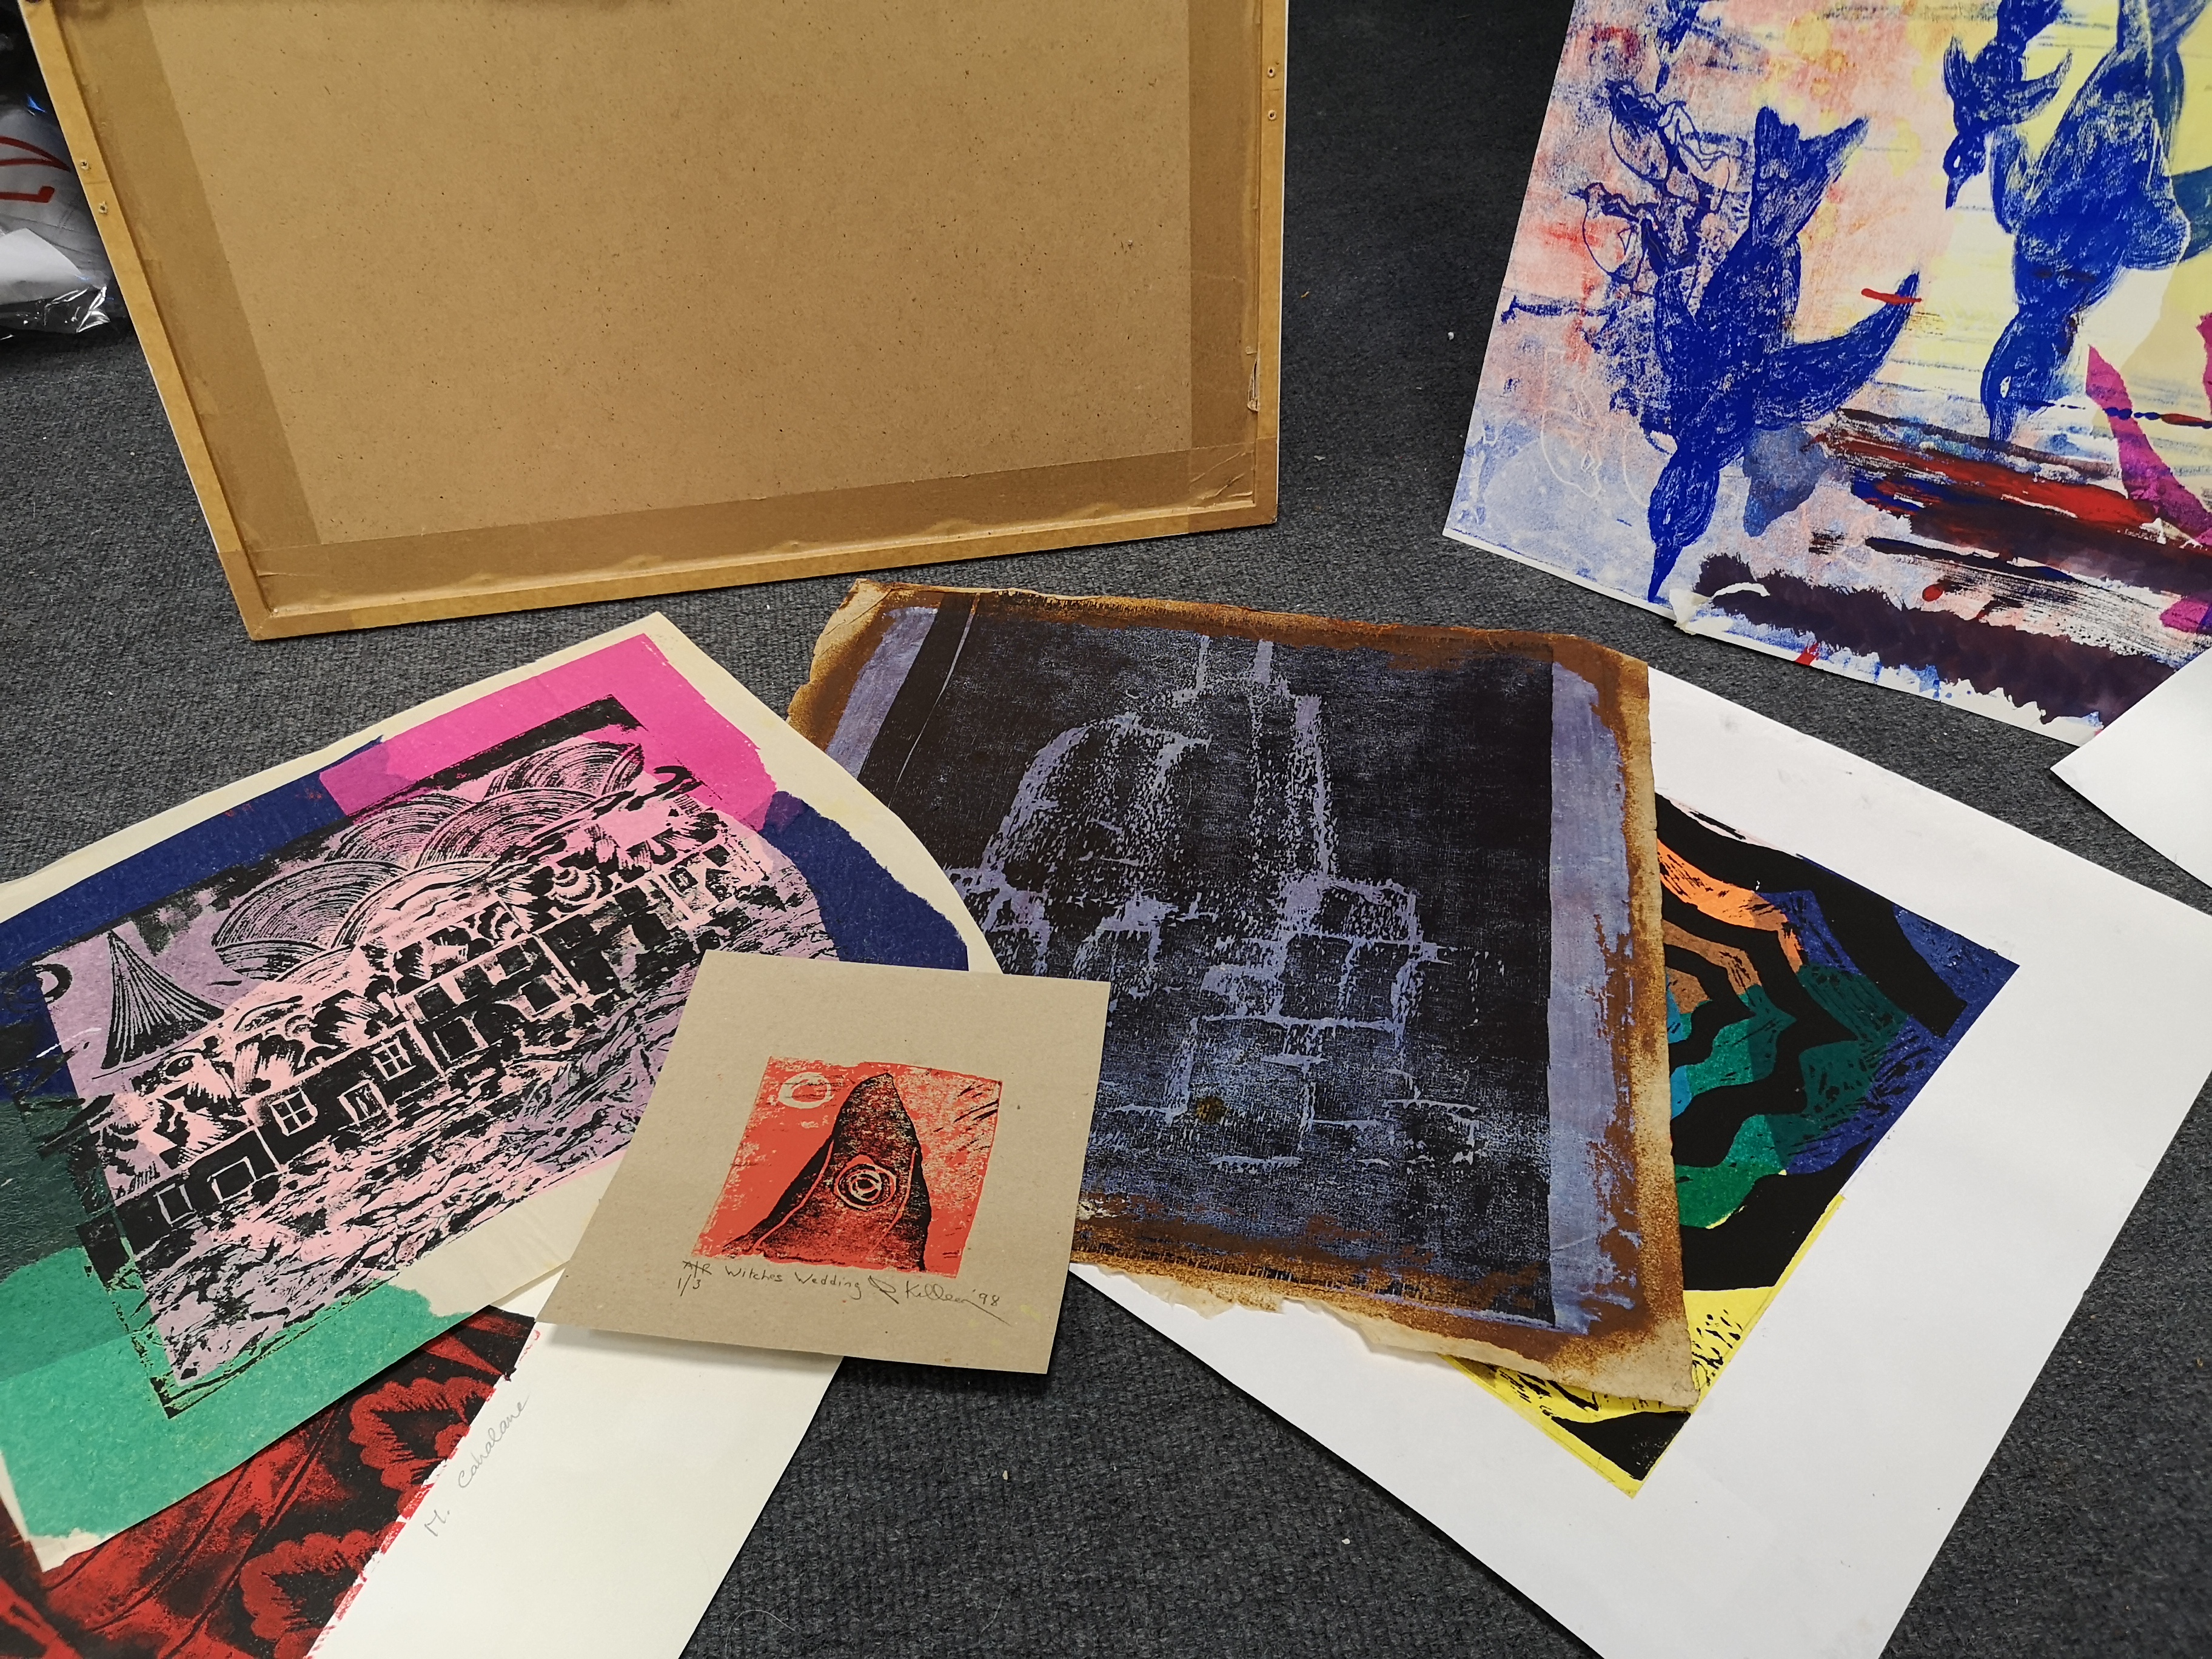 Lot 58 - A folio of various unframed prints, to include works by: